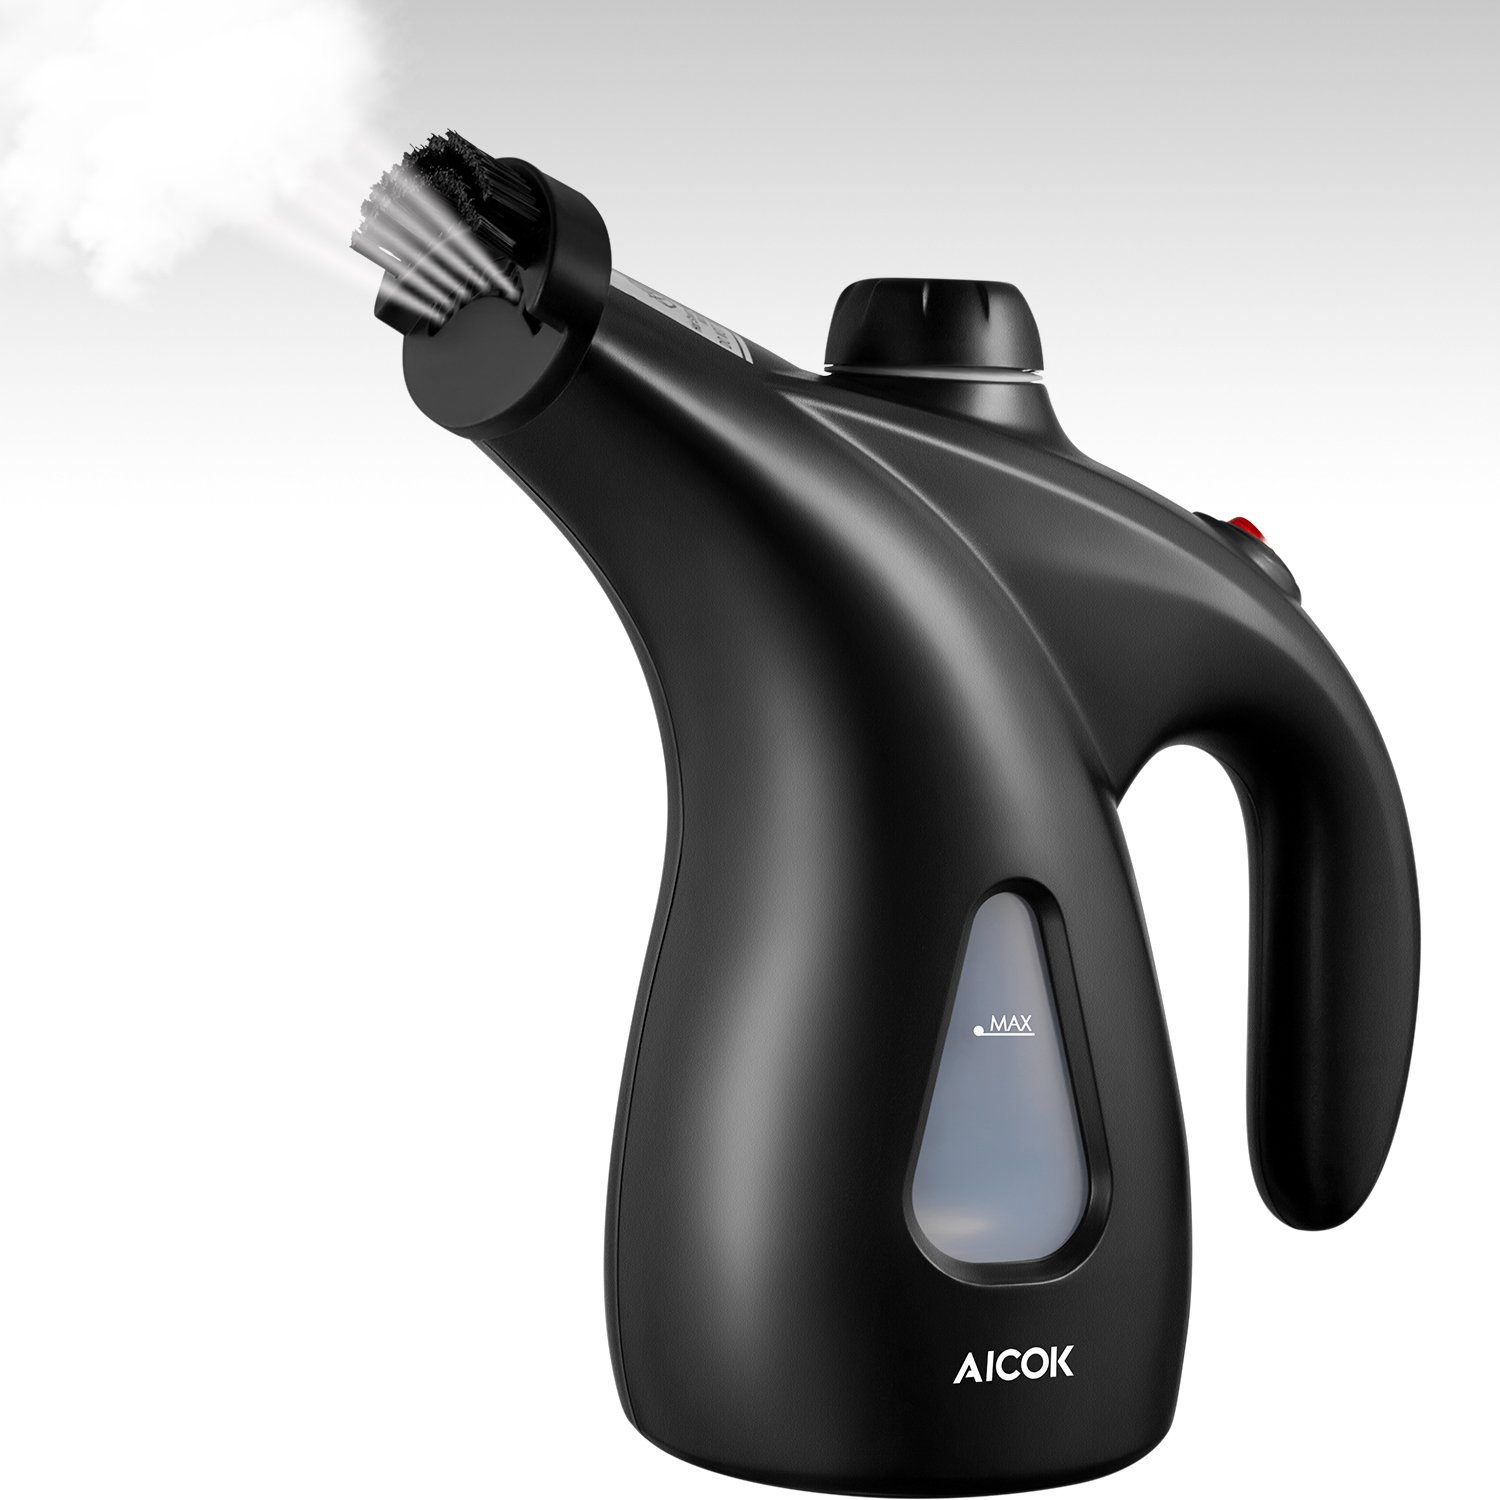 AICOK Garment Steamer, 950W Steamer for Clothes, 200ml Portable Handheld Fabric Steamer for Home and Travel, 40s Fast Heat-up, with Pouch and Brush, Black by AICOK